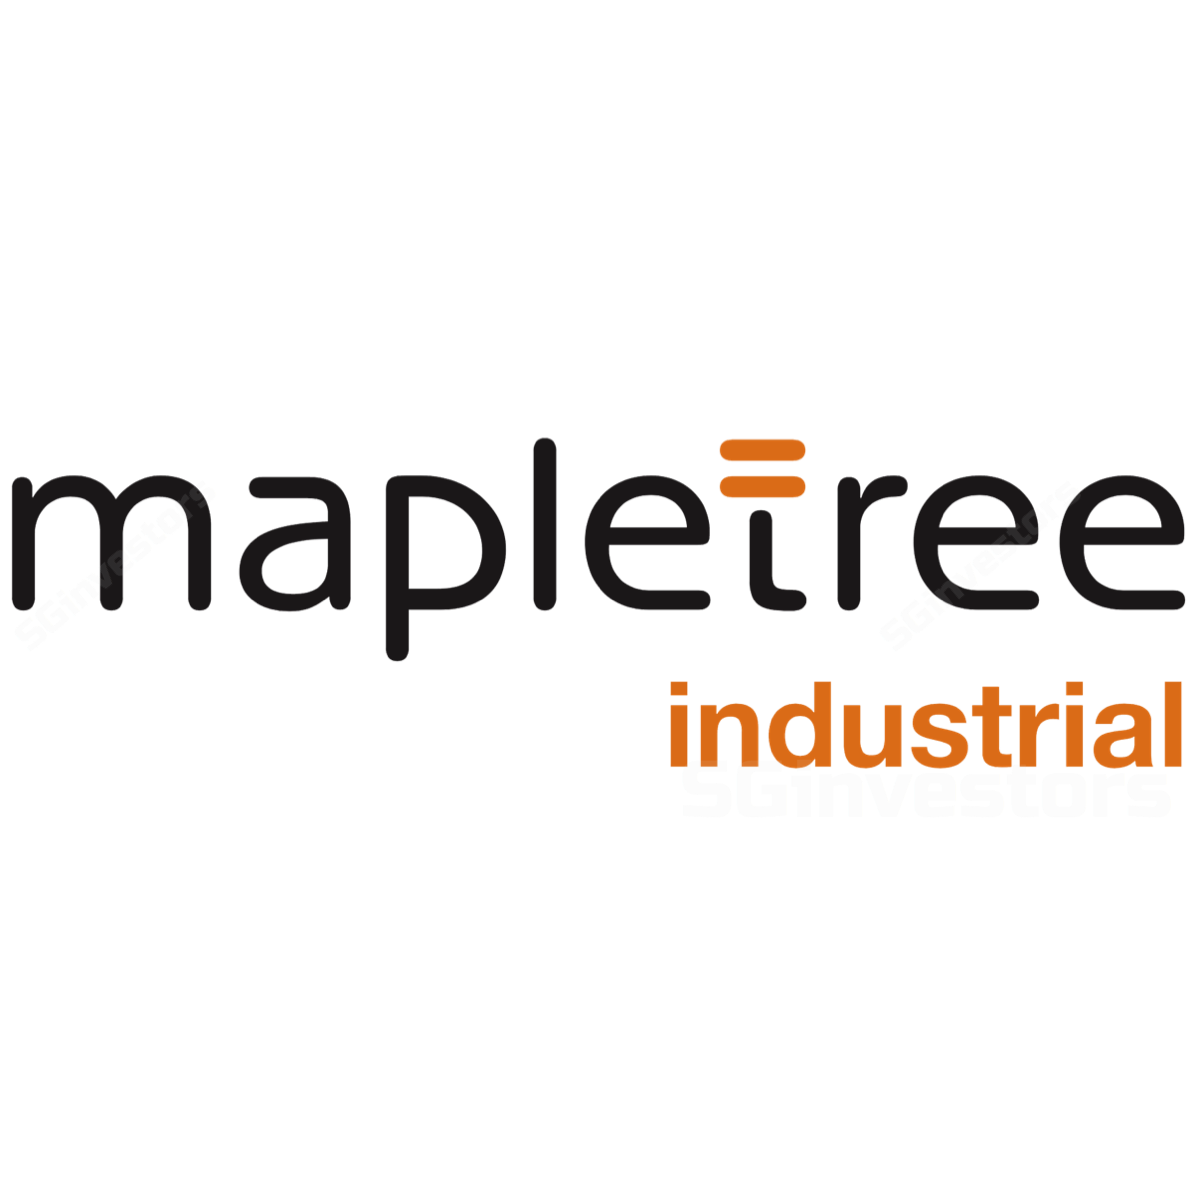 Mapletree Industrial Trust - CIMB Research 2016-12-05: Accelerating momentum for hi-tech buildings